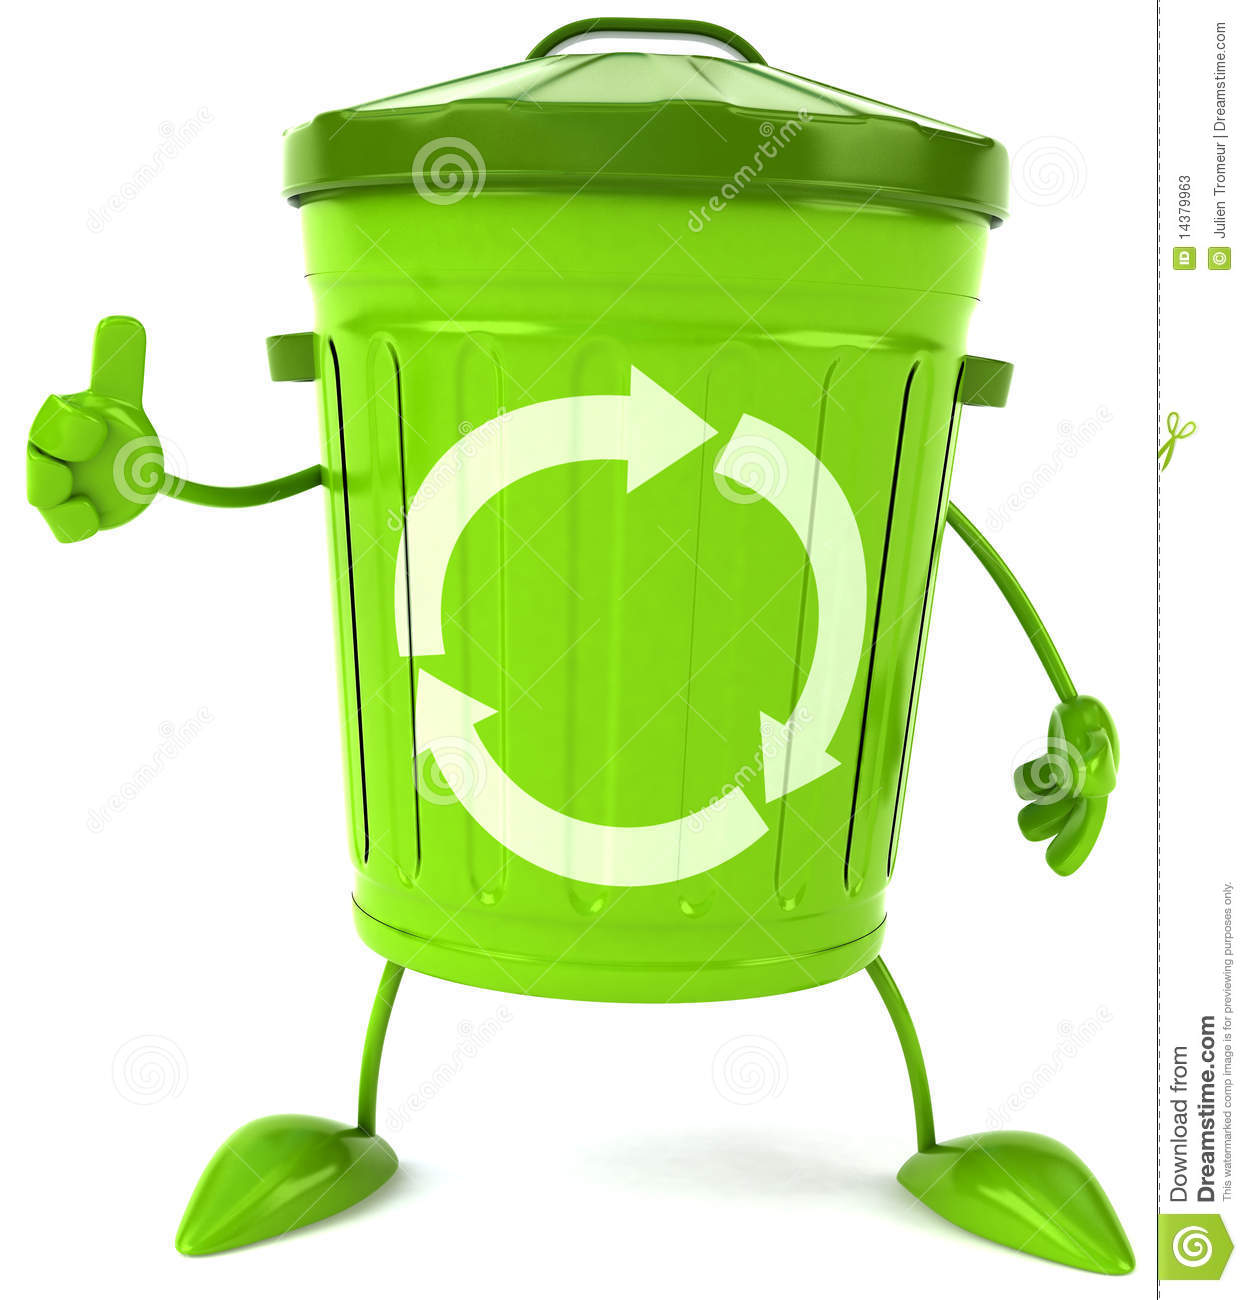 Fun Trash Can Trash Can Stock Illustration Illustration Of Rubbish 14379963